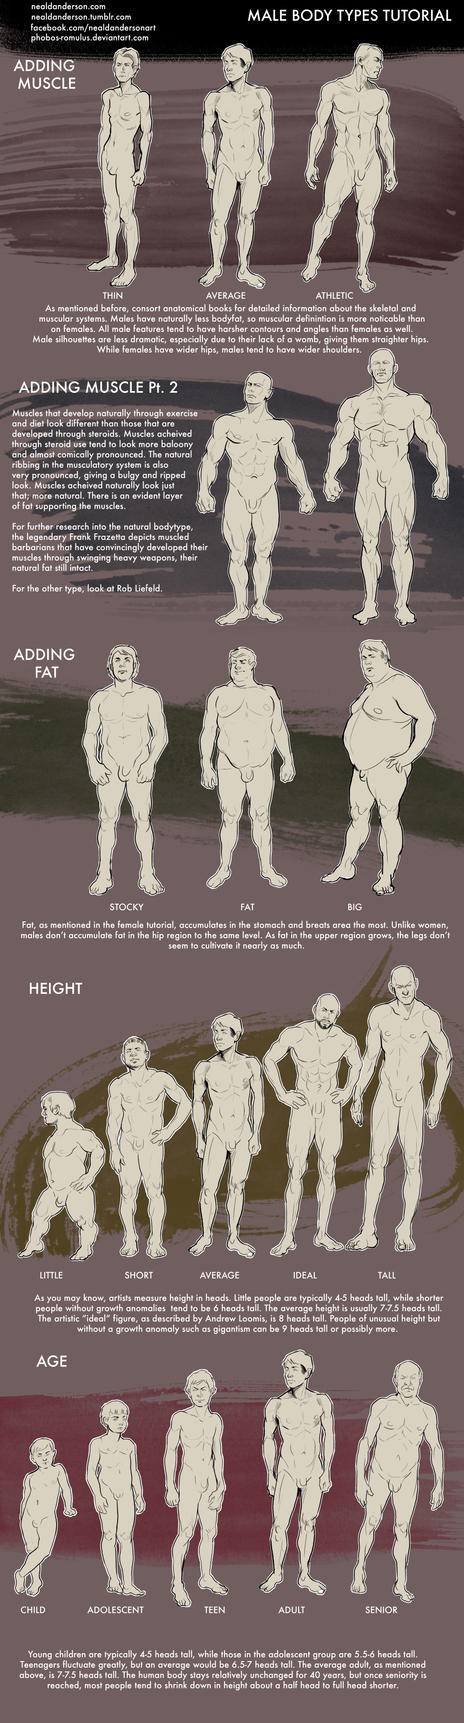 Male Body Types Tutorial by Phobos-Romulus